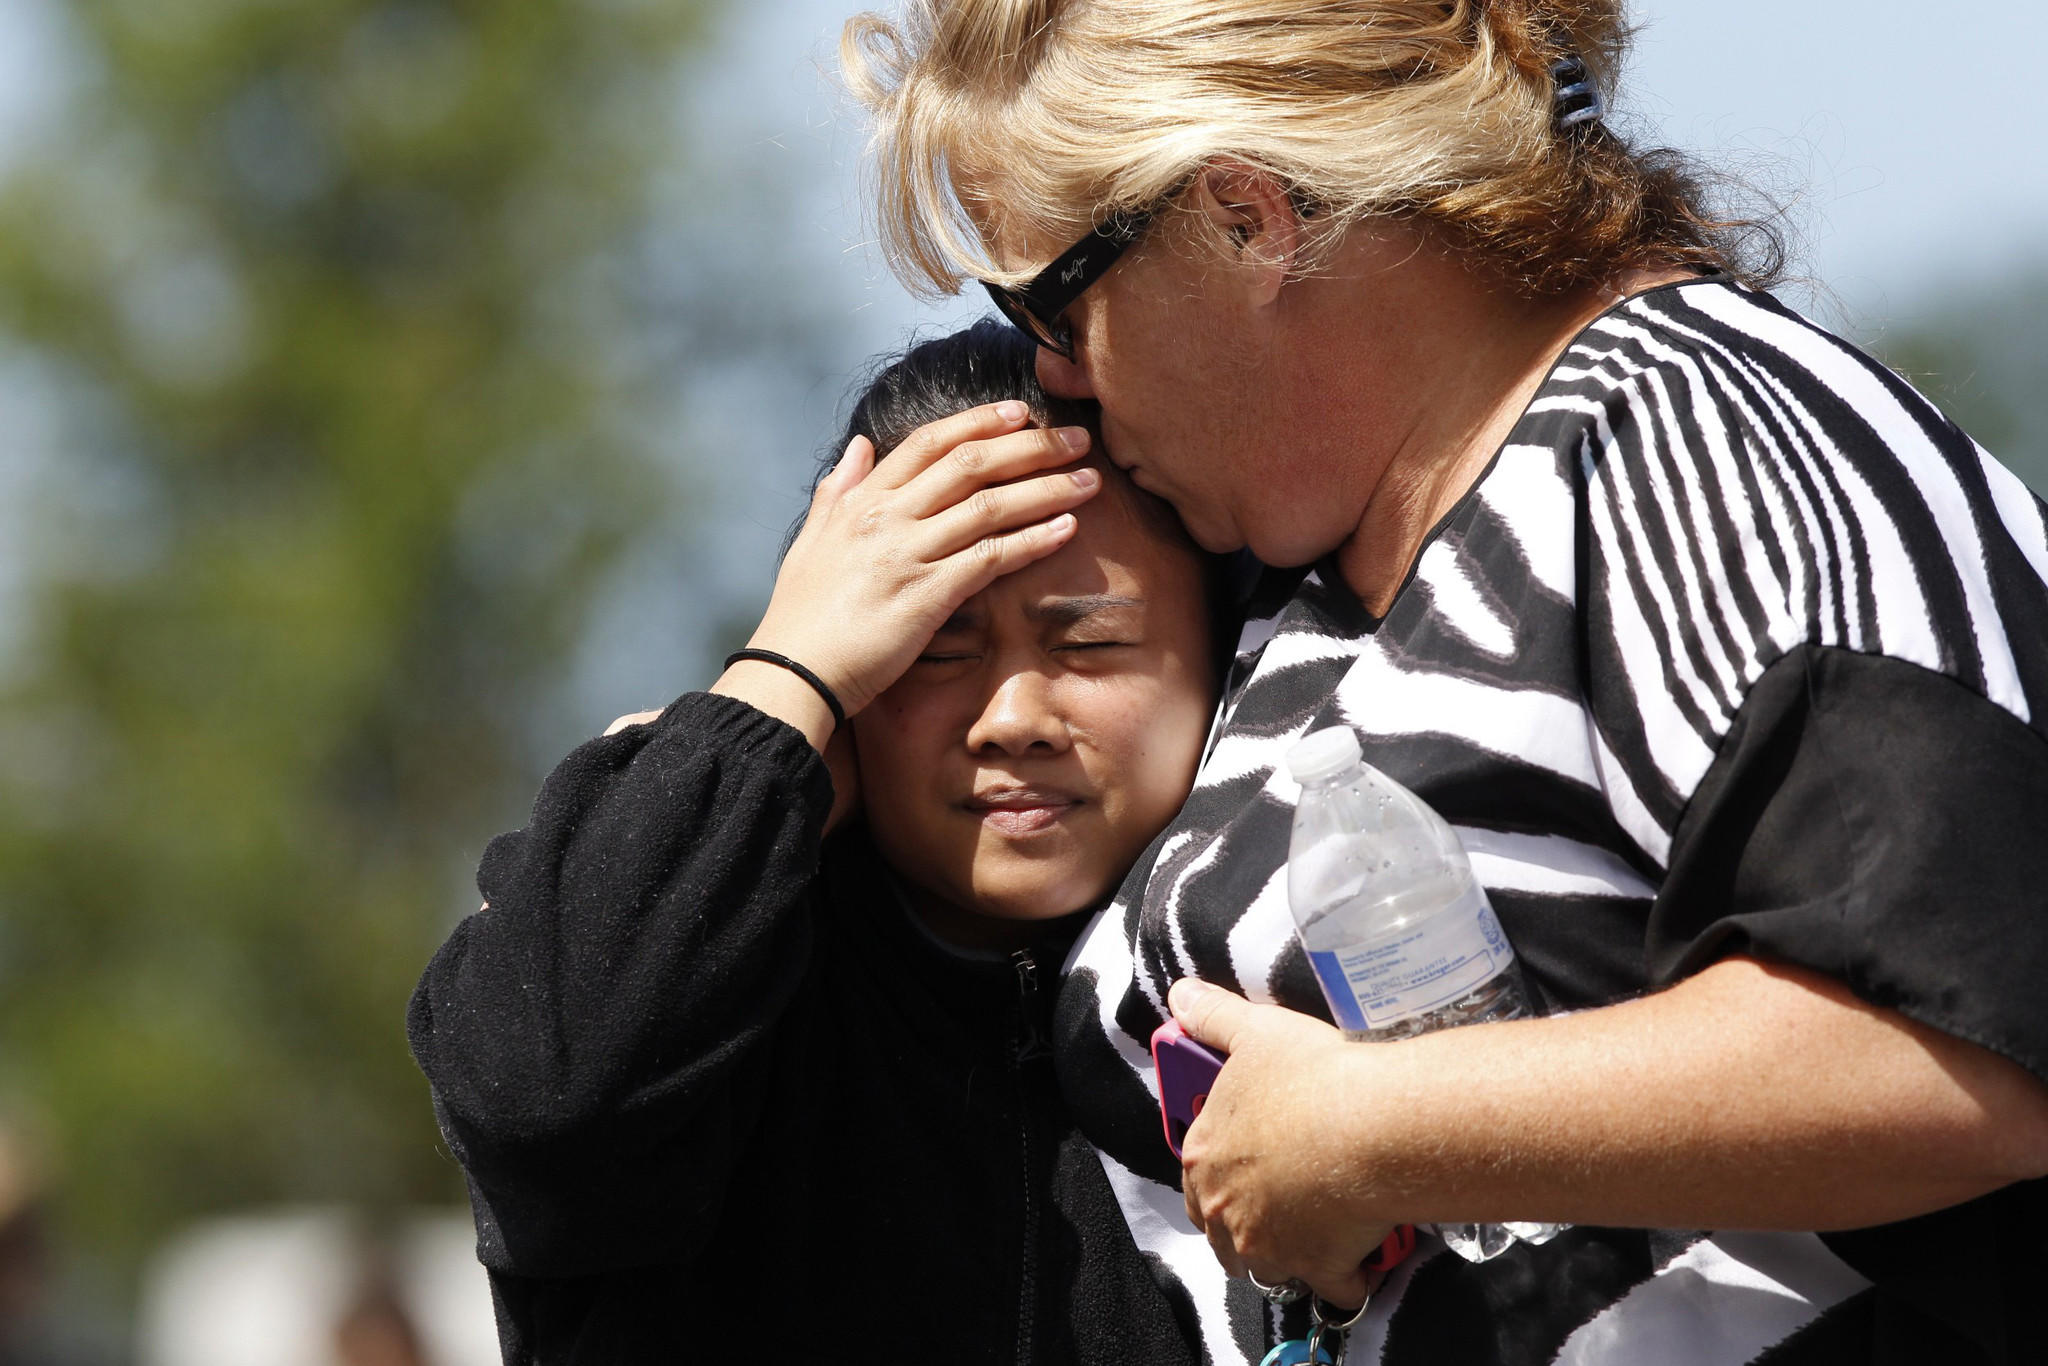 Parents and students are reunited after a shooting at Reynolds High School in Troutdale, Oregon.